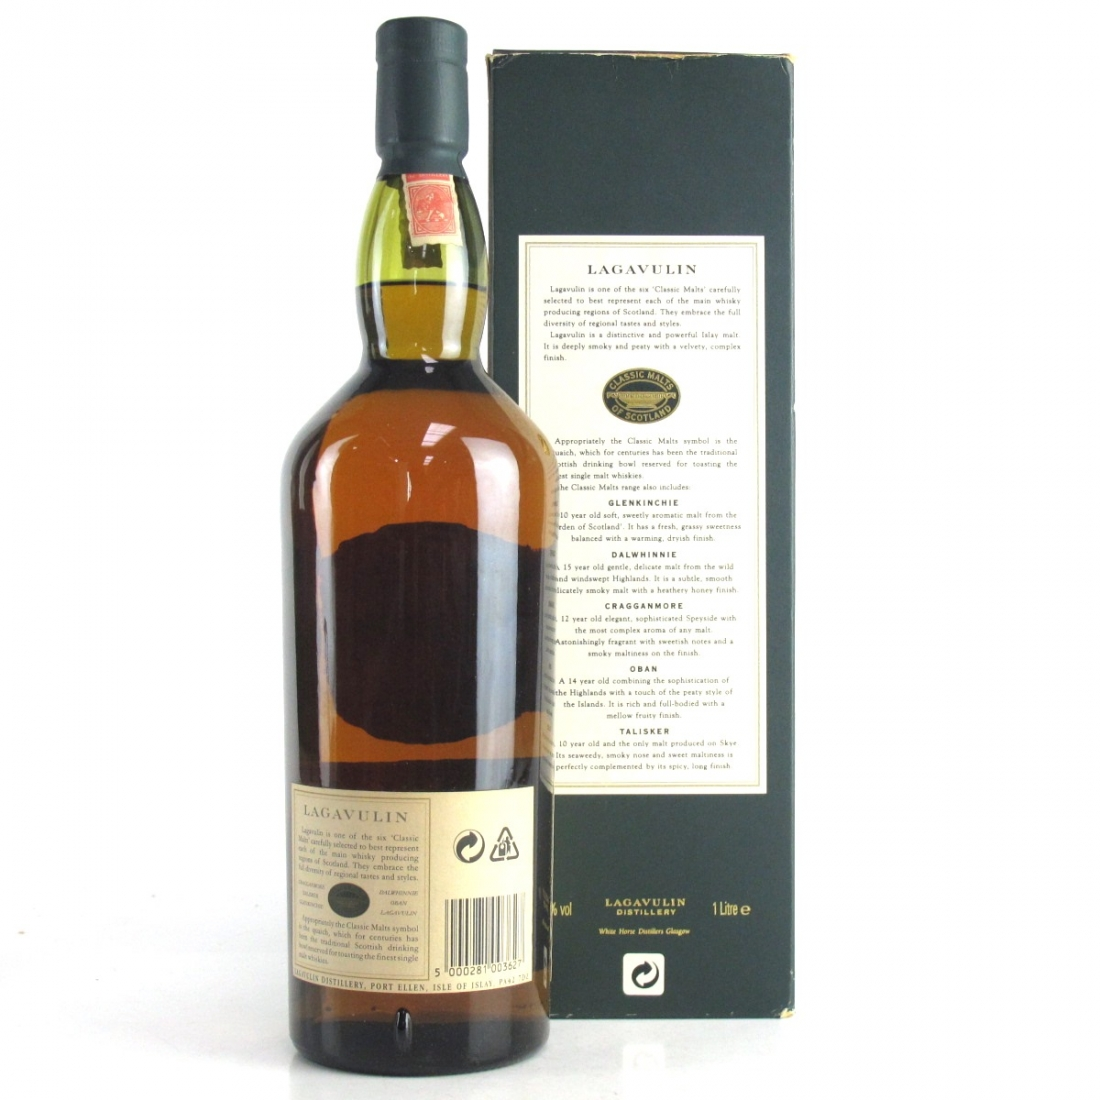 Lagavulin 16 Year Old White Horse Bottling 1 Litre